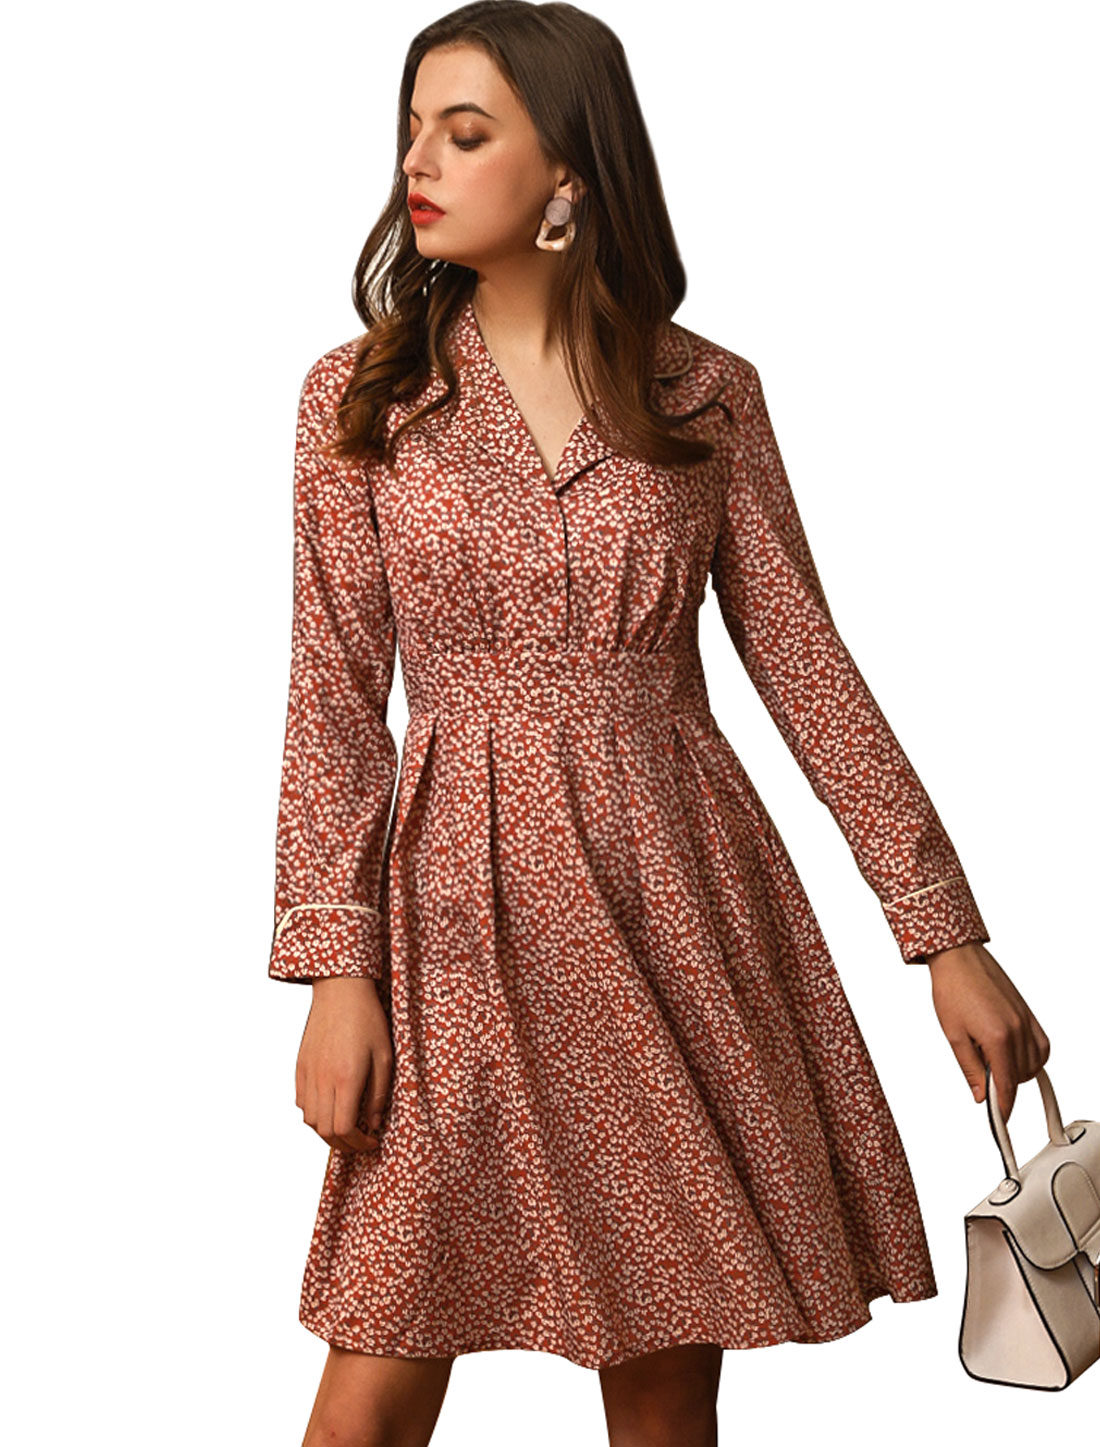 Women's Vintage Long Sleeve Lapel Casual Floral A-Line Dress Red M (US 10)